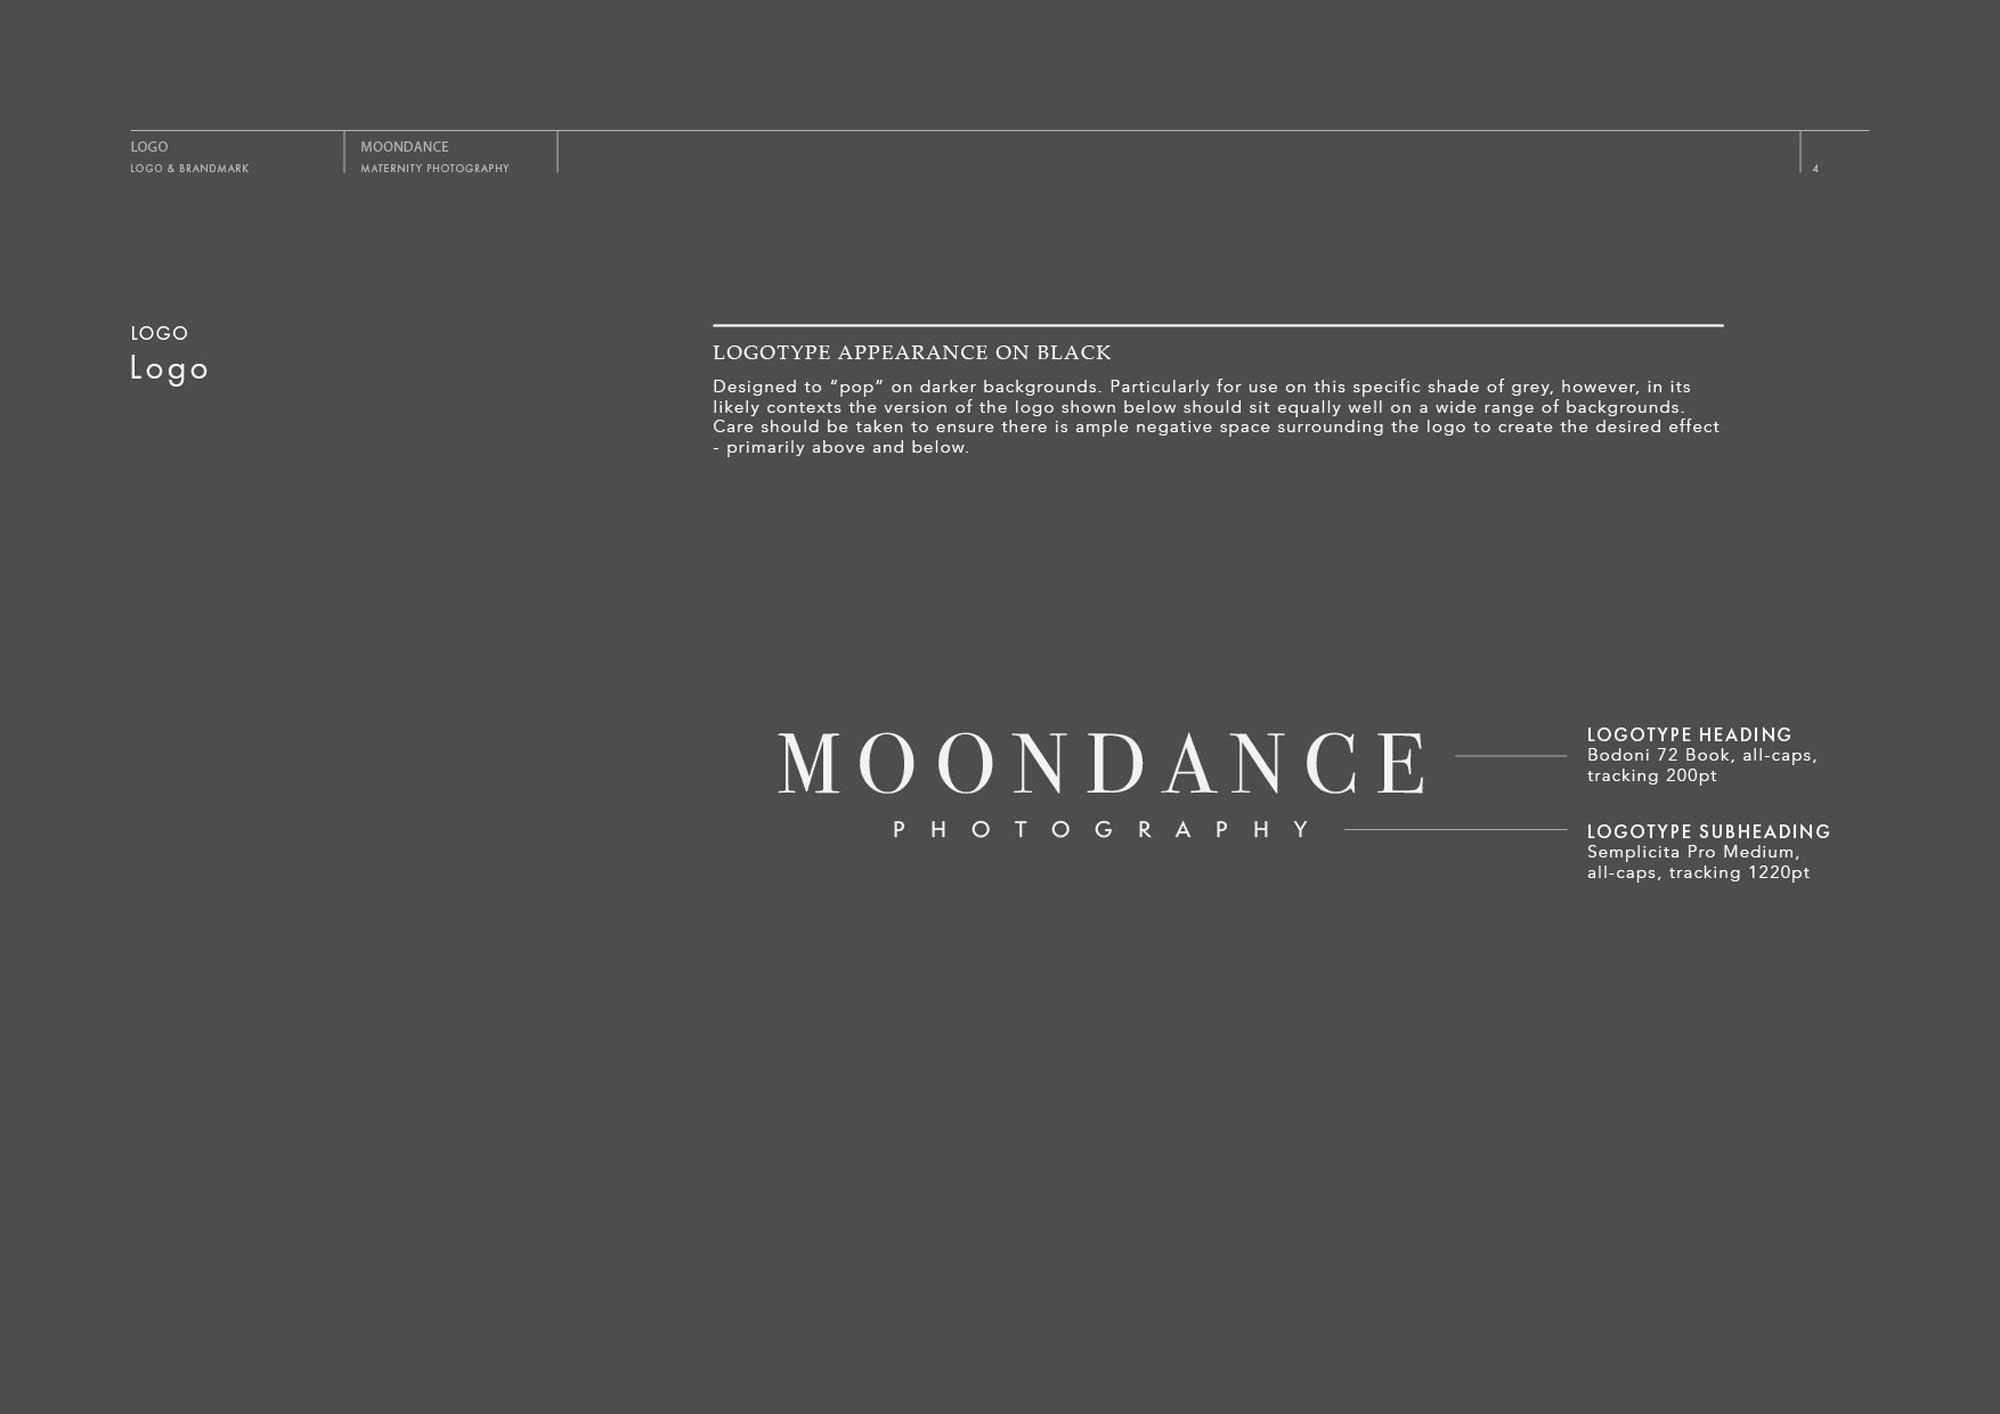 Moondance Photography Brand Book4